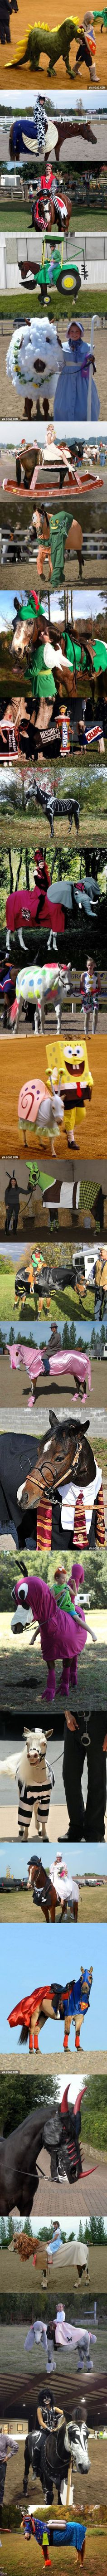 26 Creatively Costumed Horses Who Are Masters Of Disguise (shakes fist)